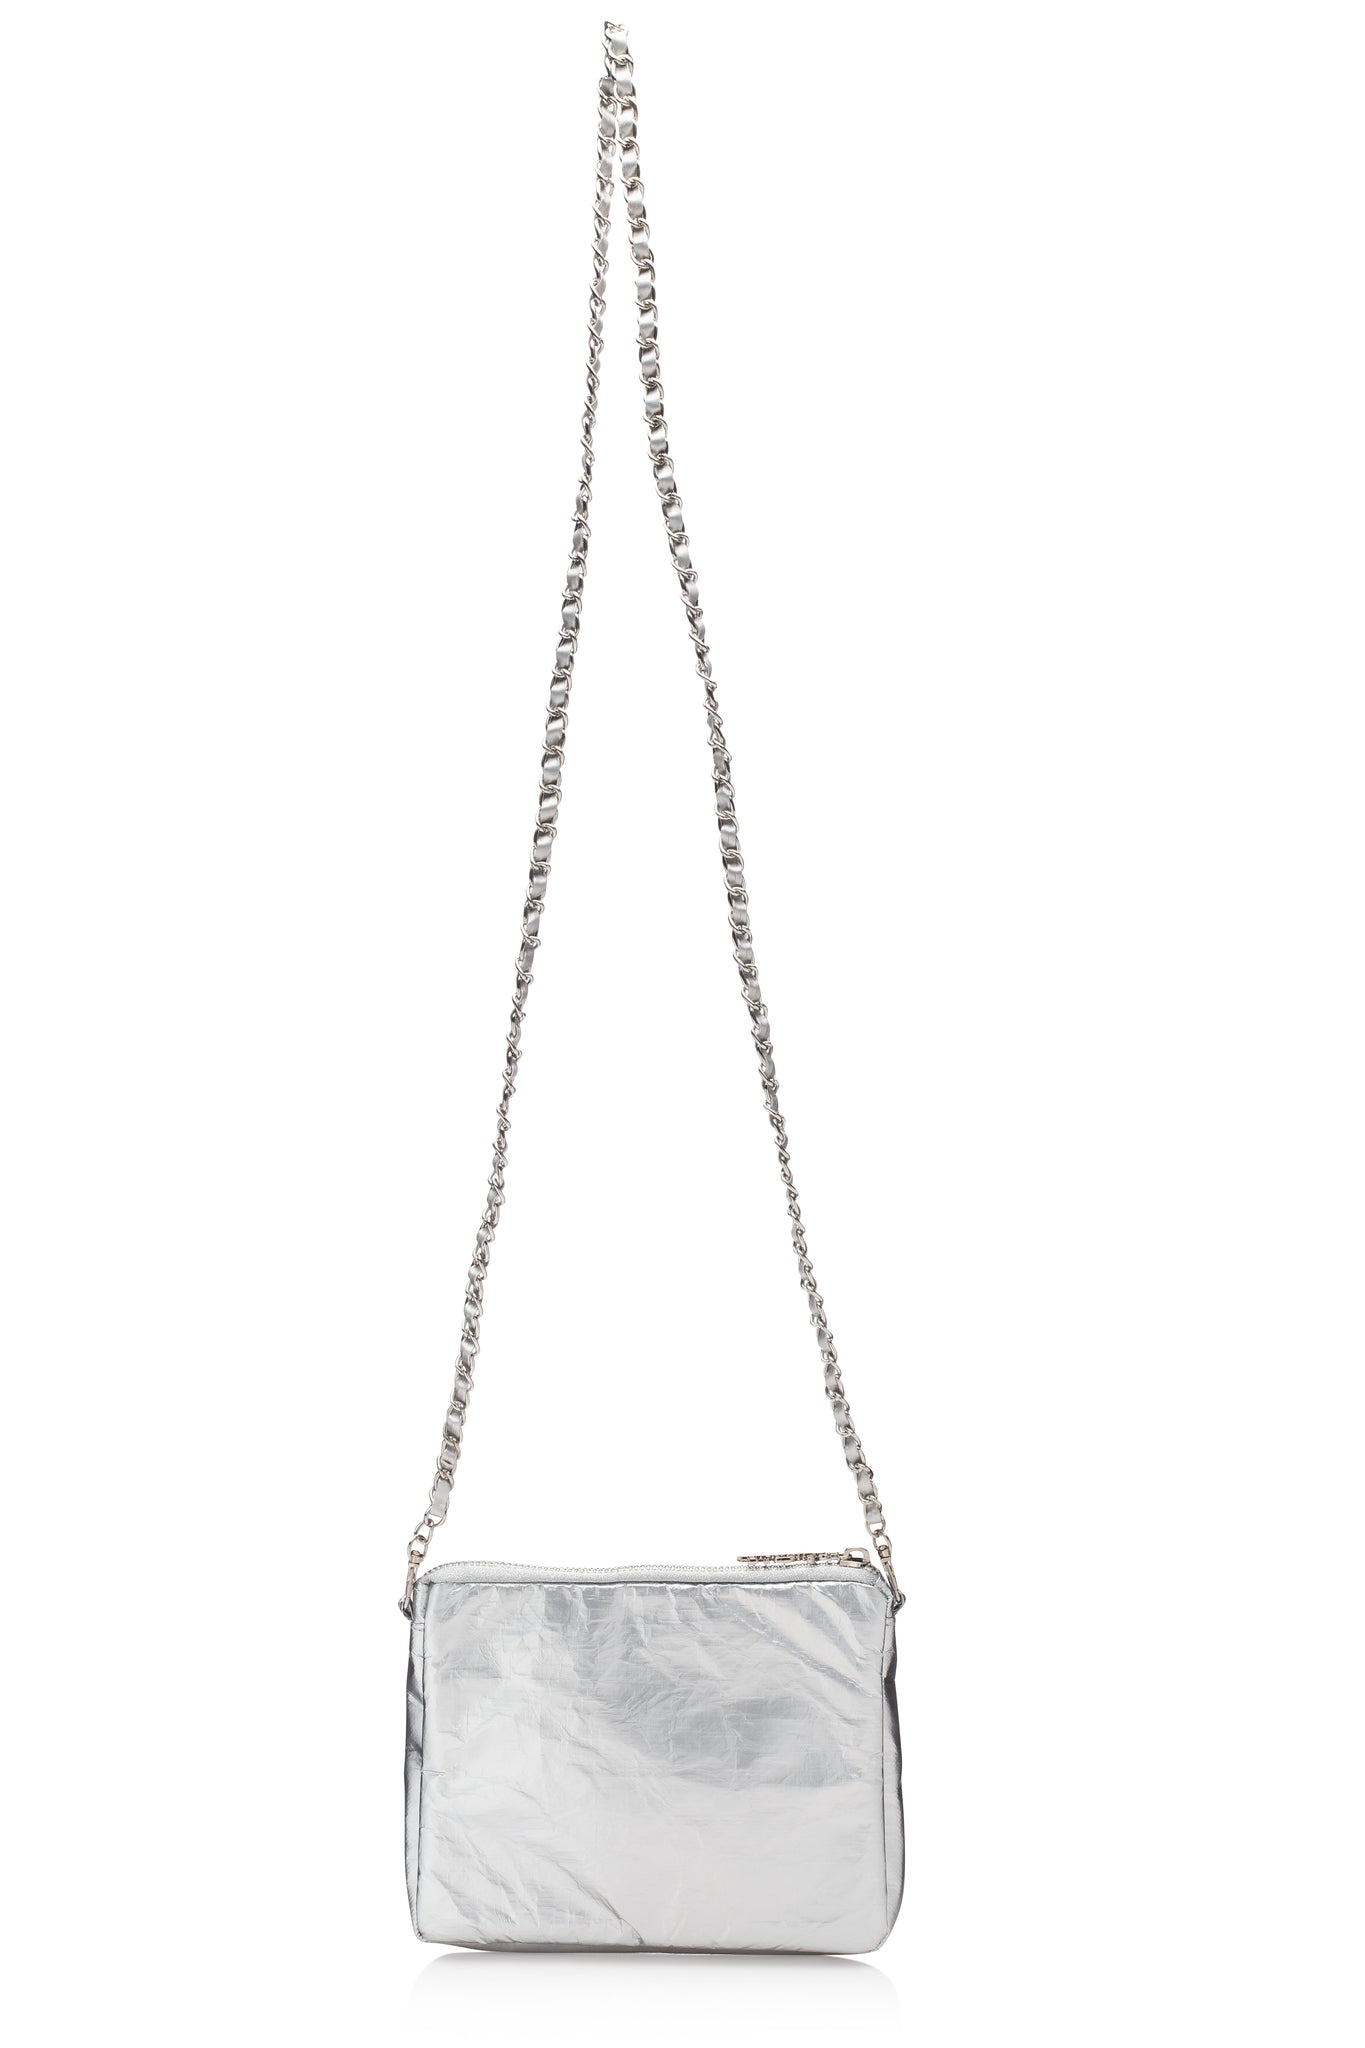 Chain Purse Collection - Metallic Silver